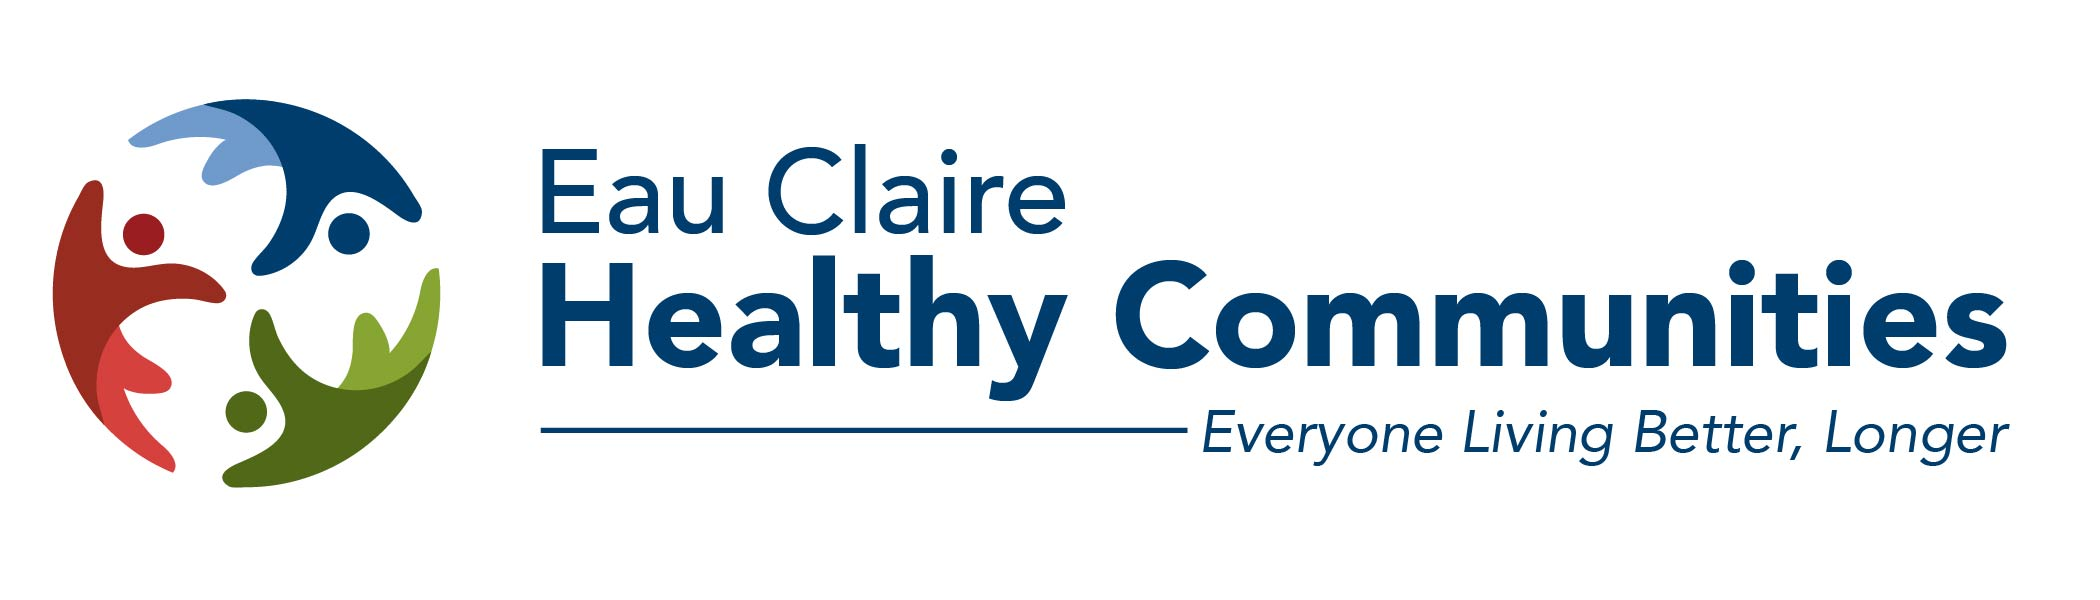 Eau Claire Healthy Communities